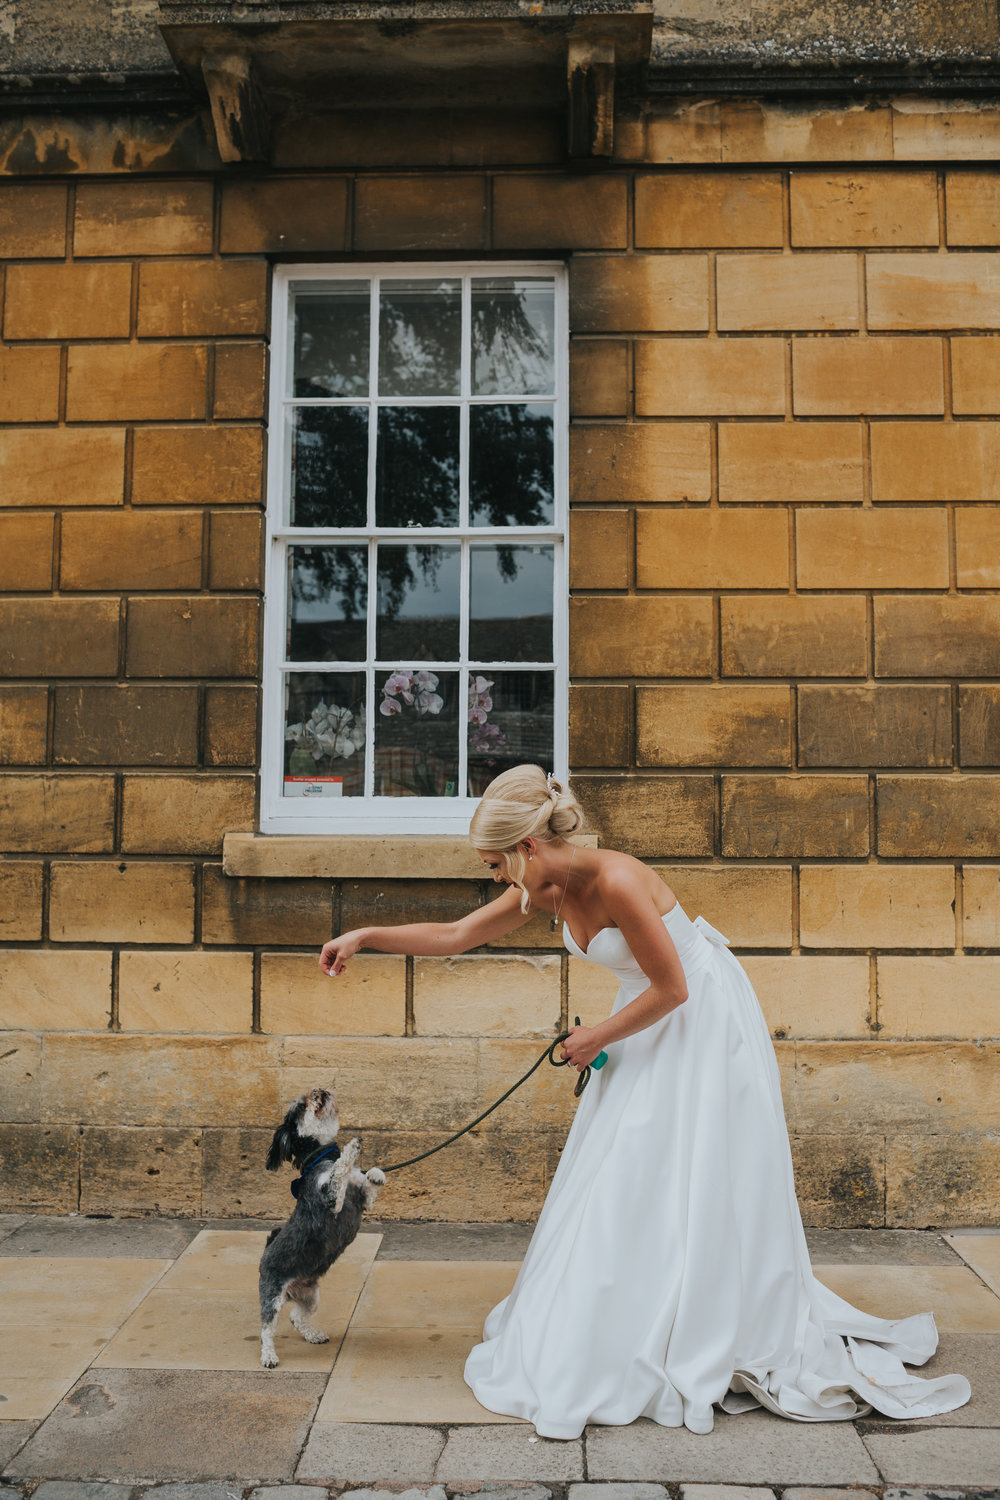 Bride has her dog beg for a treat.